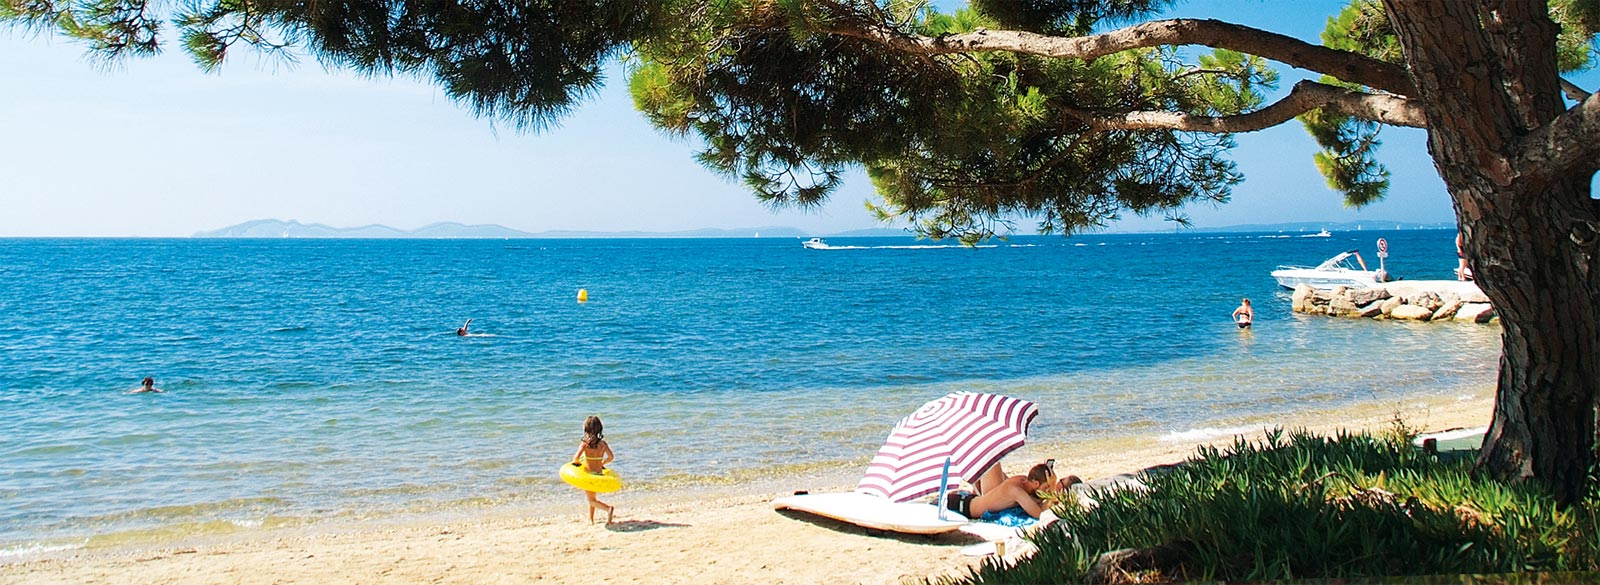 camping bormes les mimosas - emplacement tente du camping